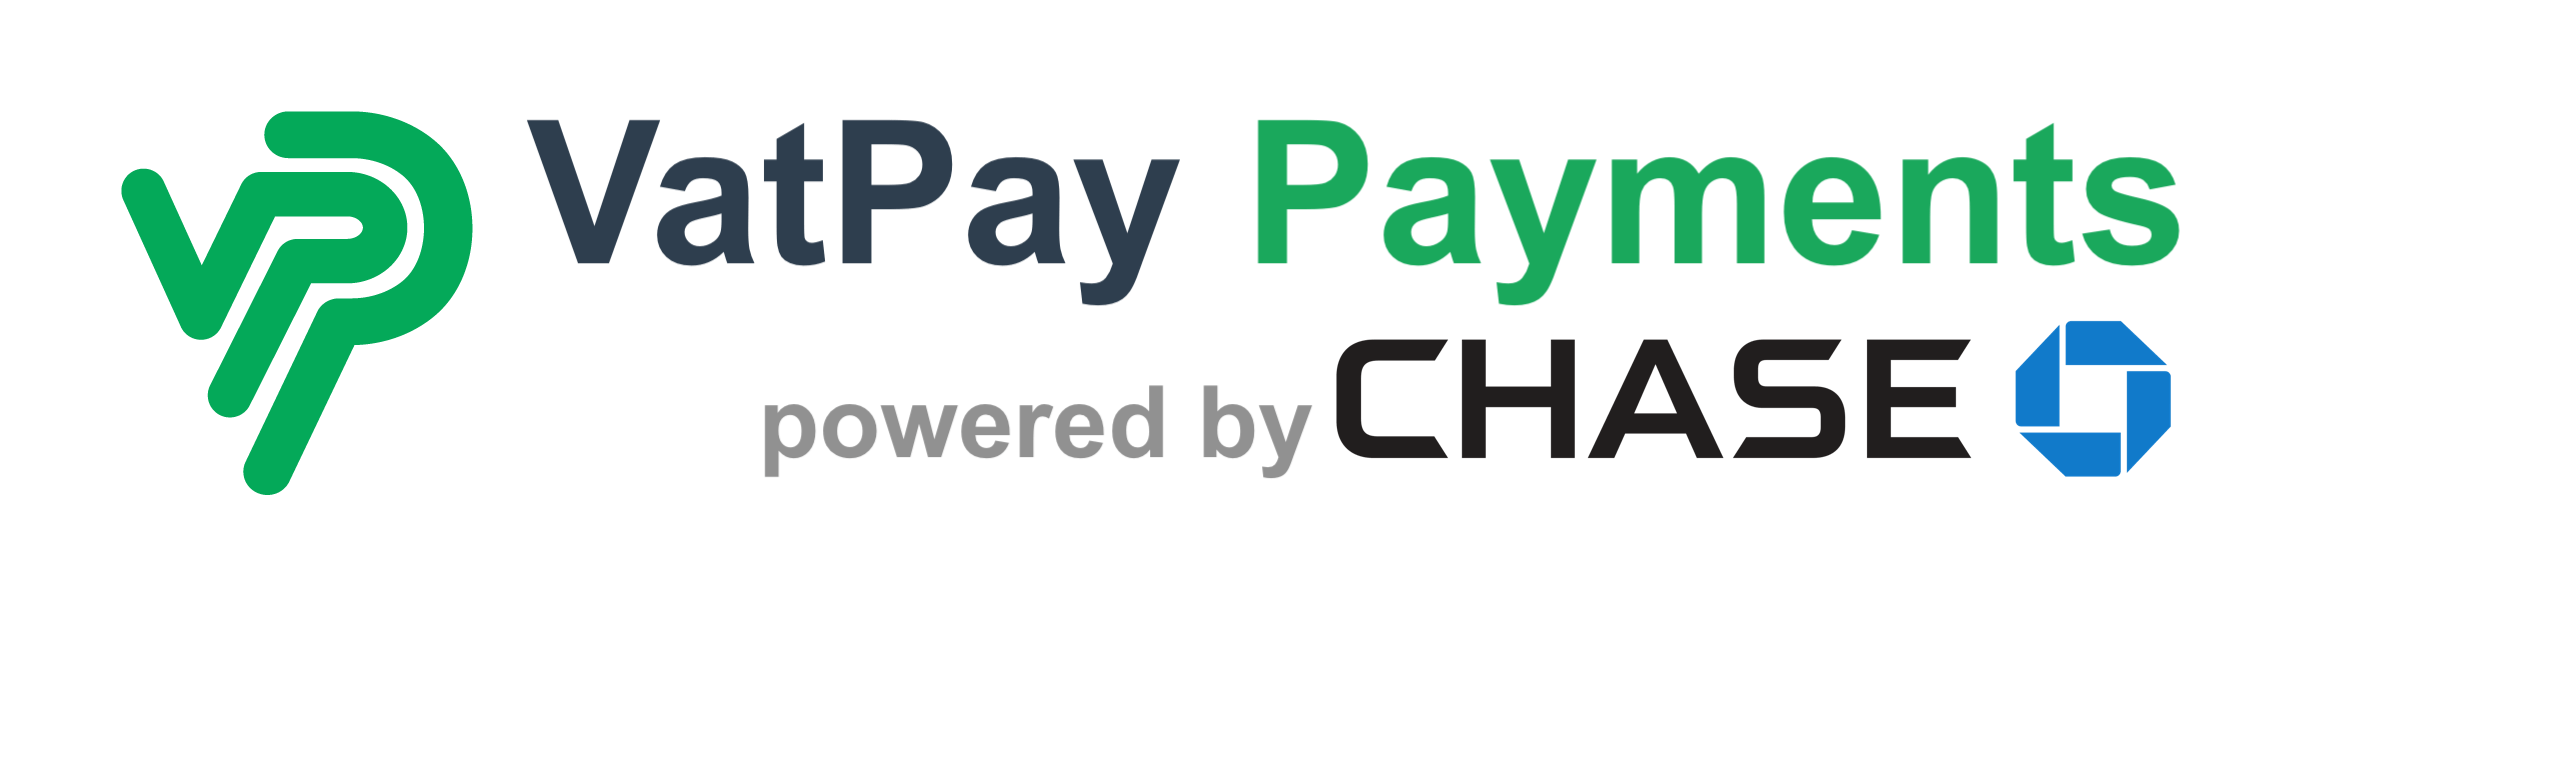 VatPay Payments by Chase